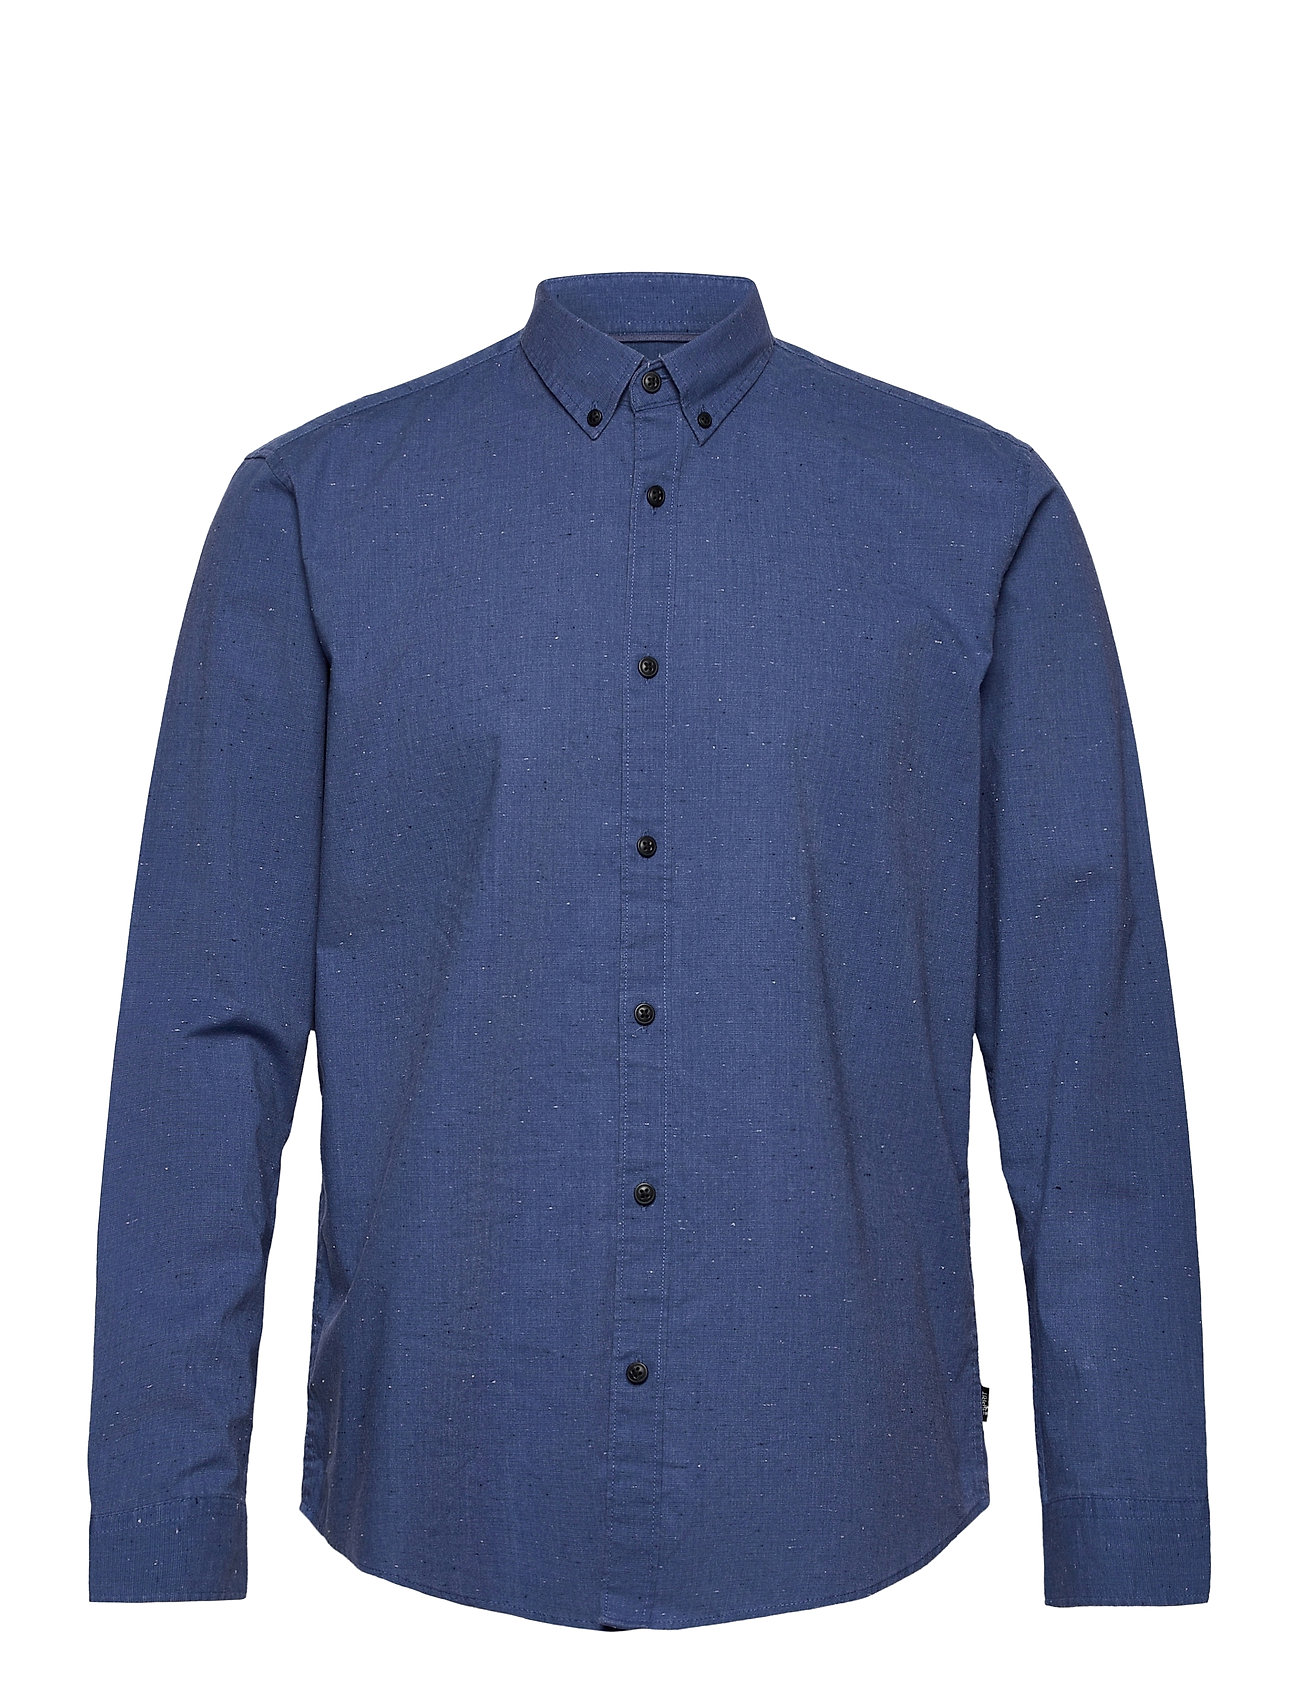 Image of Shirts Woven Skjorte Casual Blå Esprit Casual (3452227695)